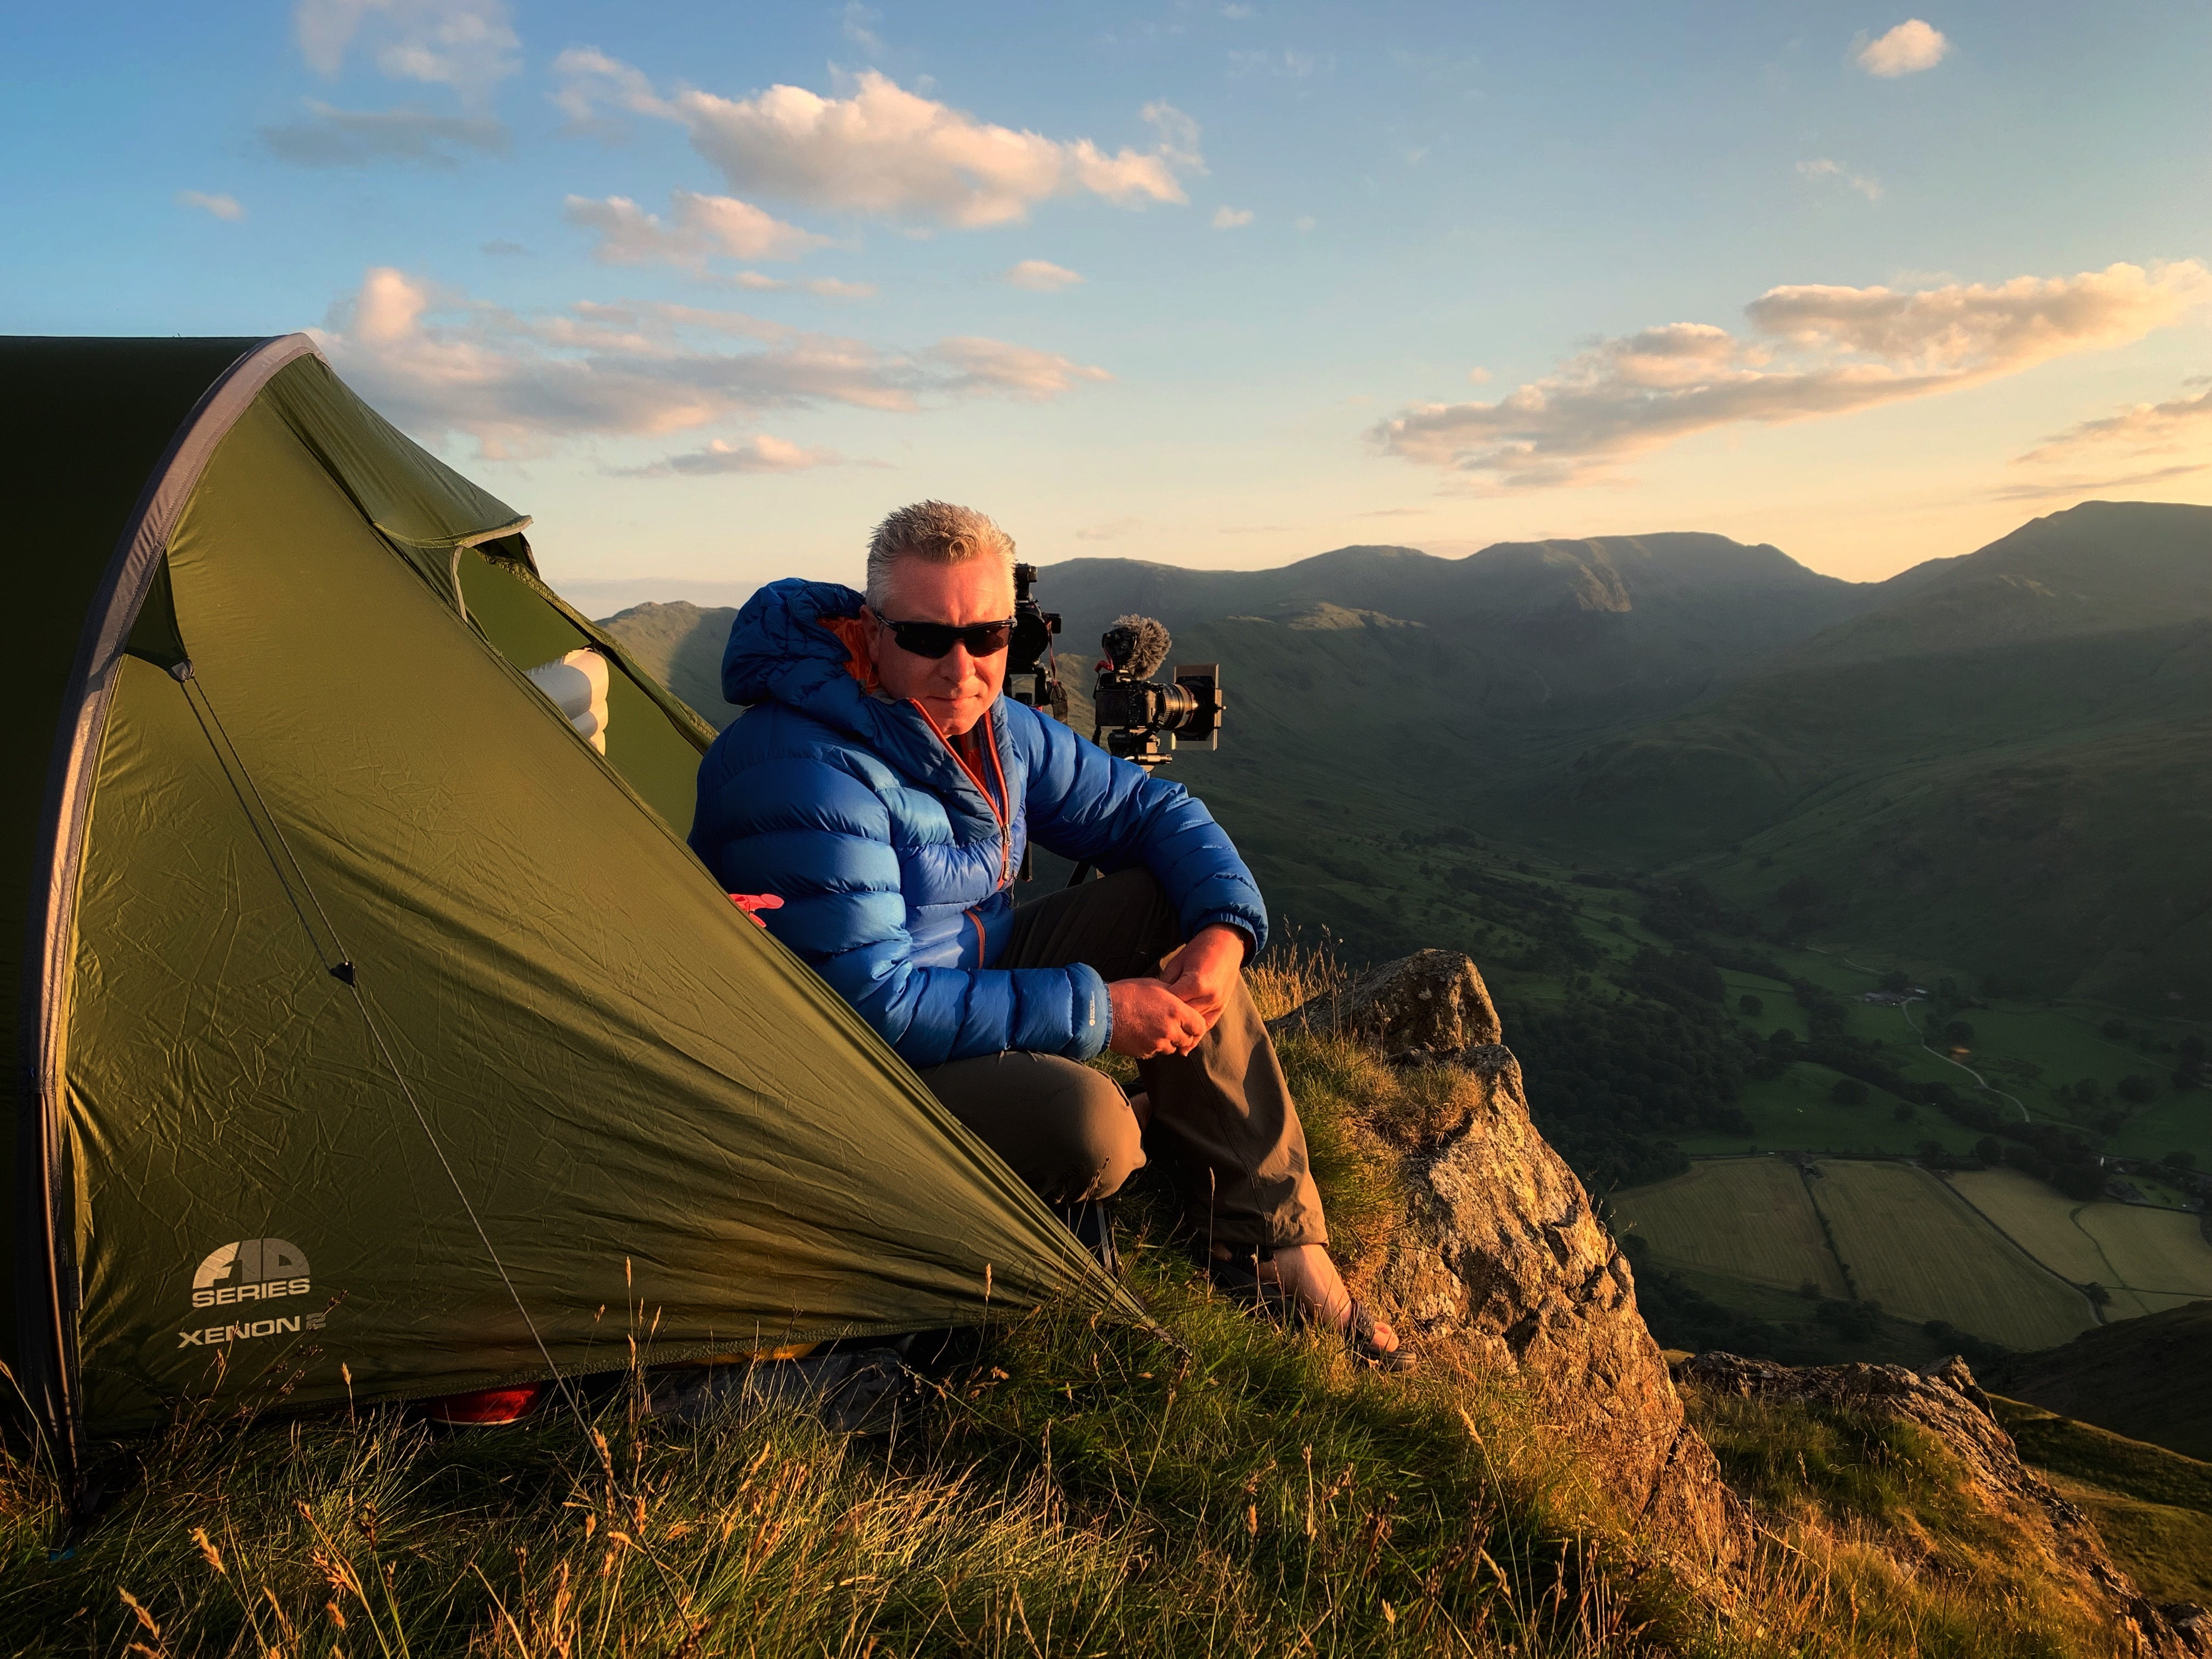 Terry Abraham Wild Camping